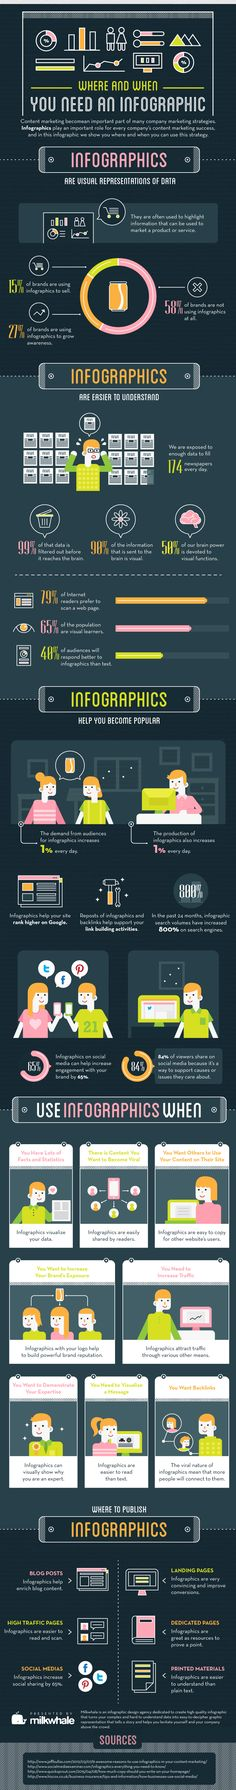 The advanced guide to Create Viral Infographics #infographic #contentmarketing